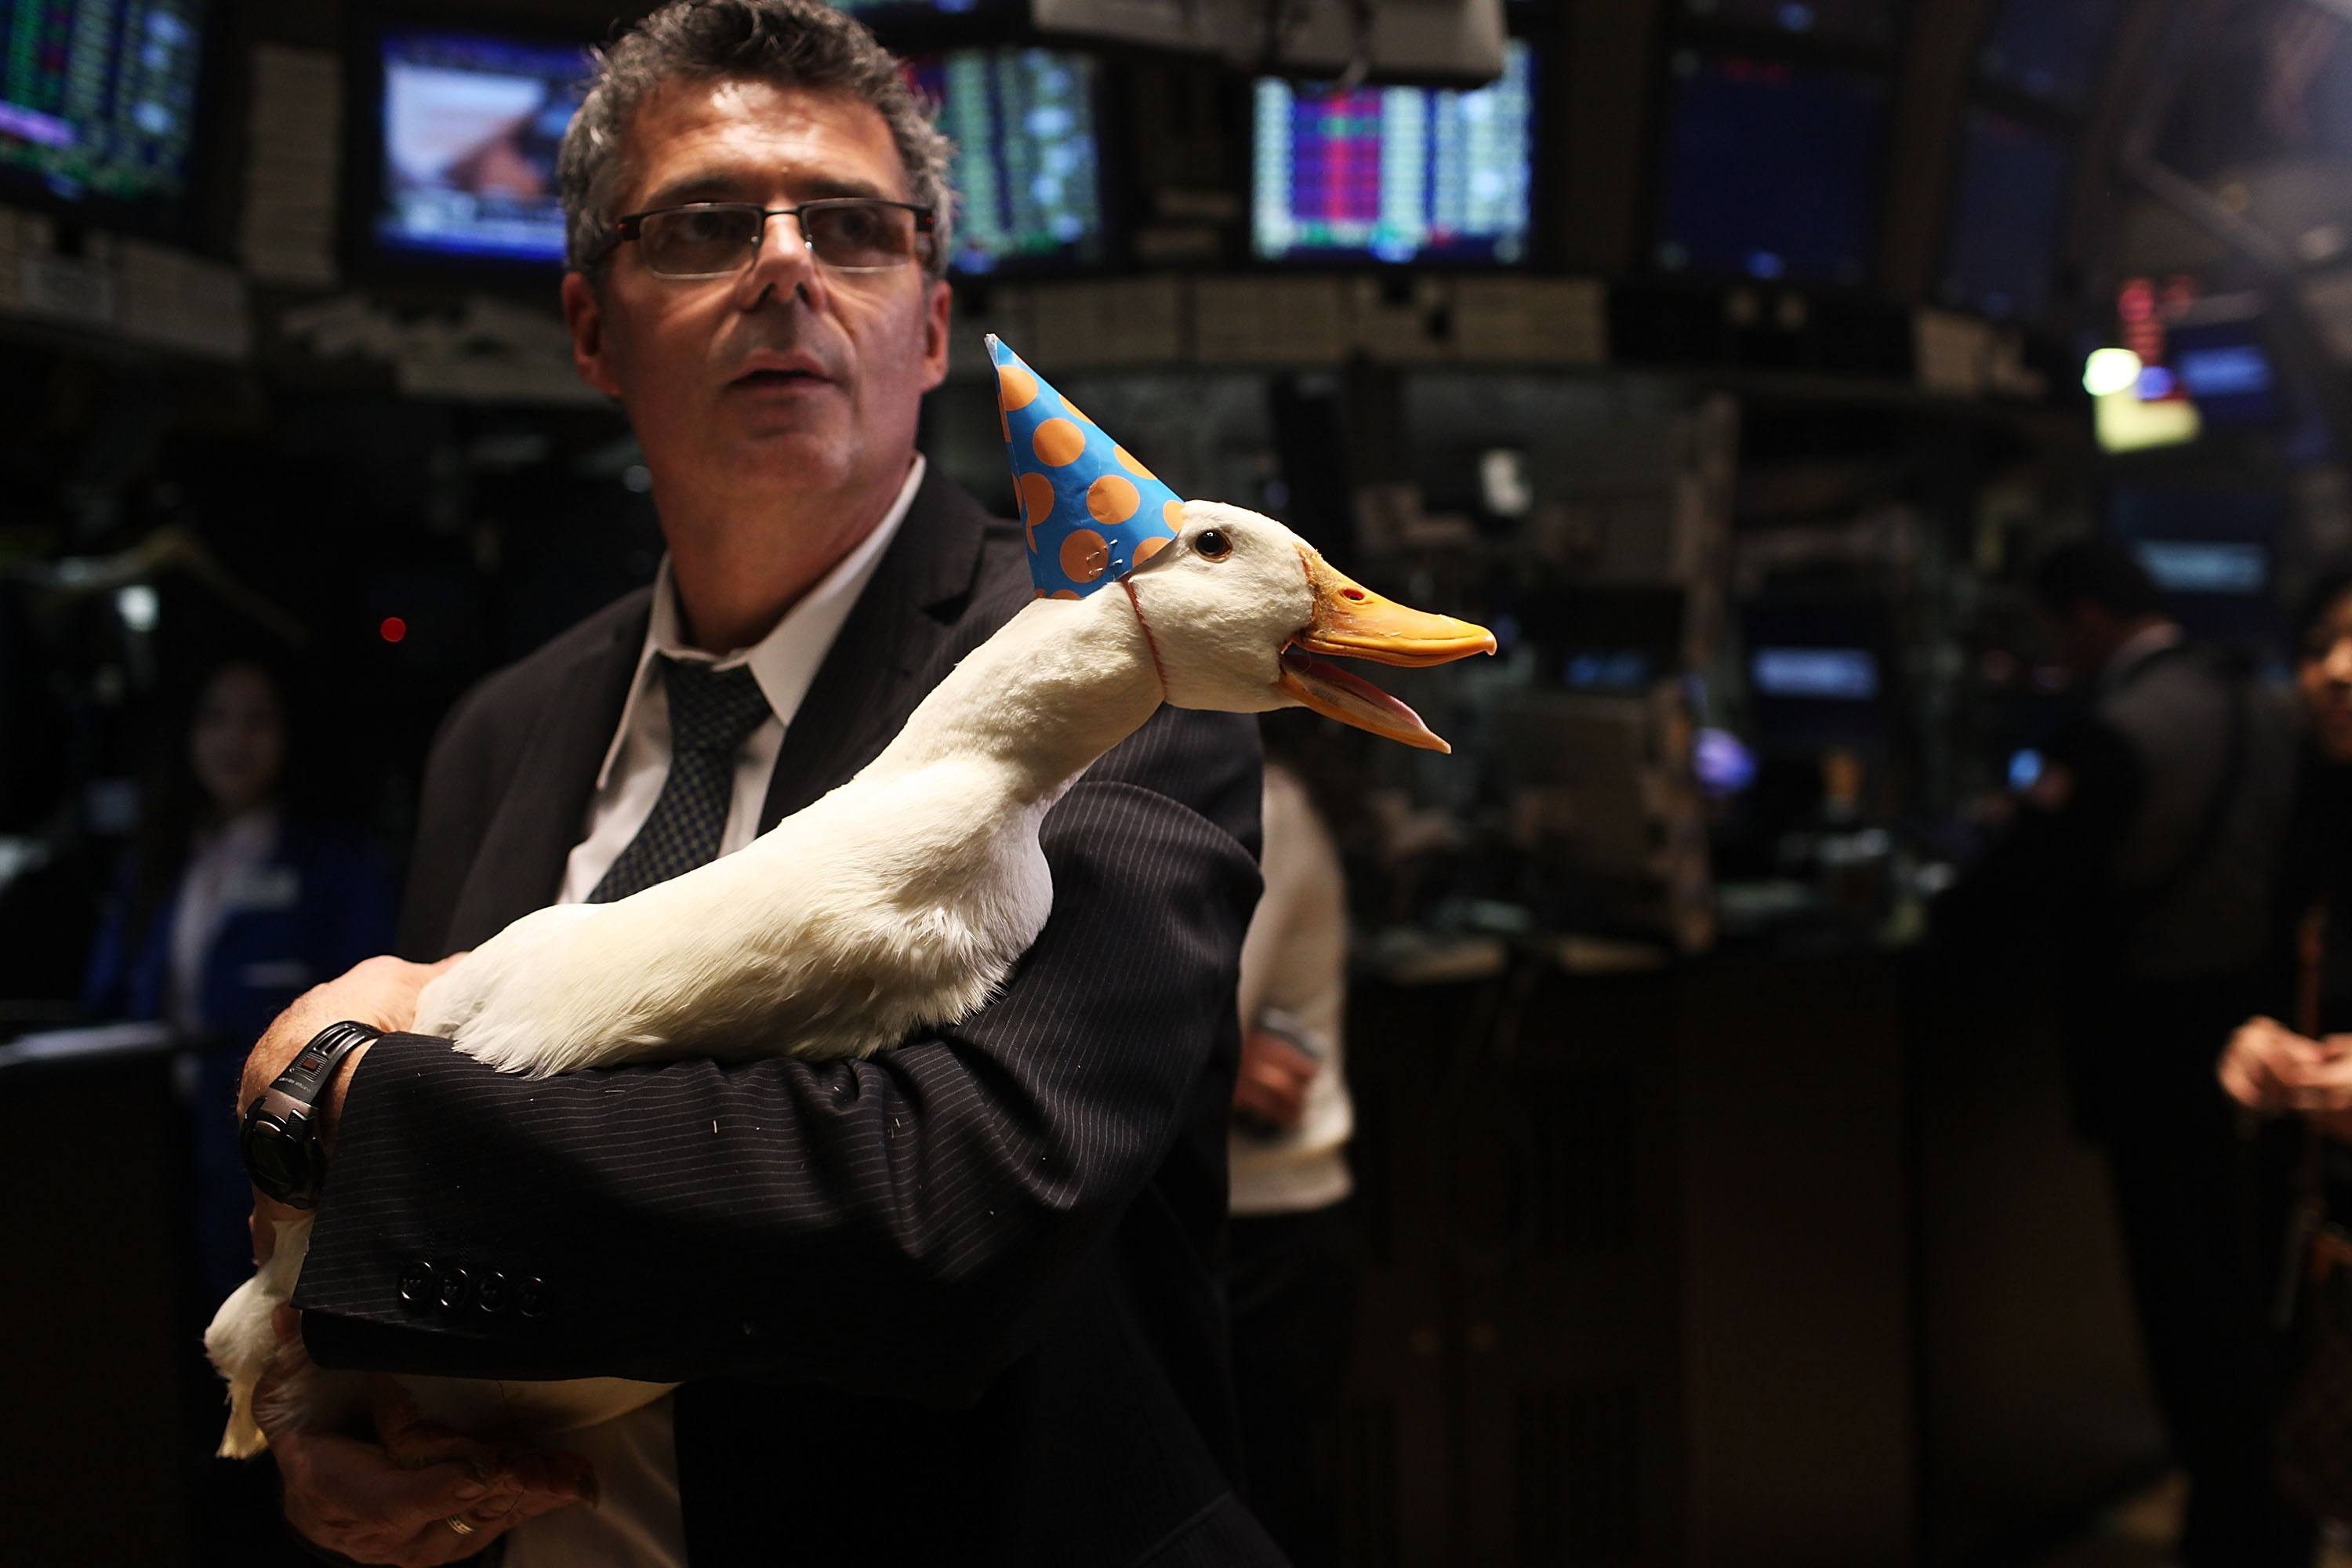 Man and duck celebrate good times